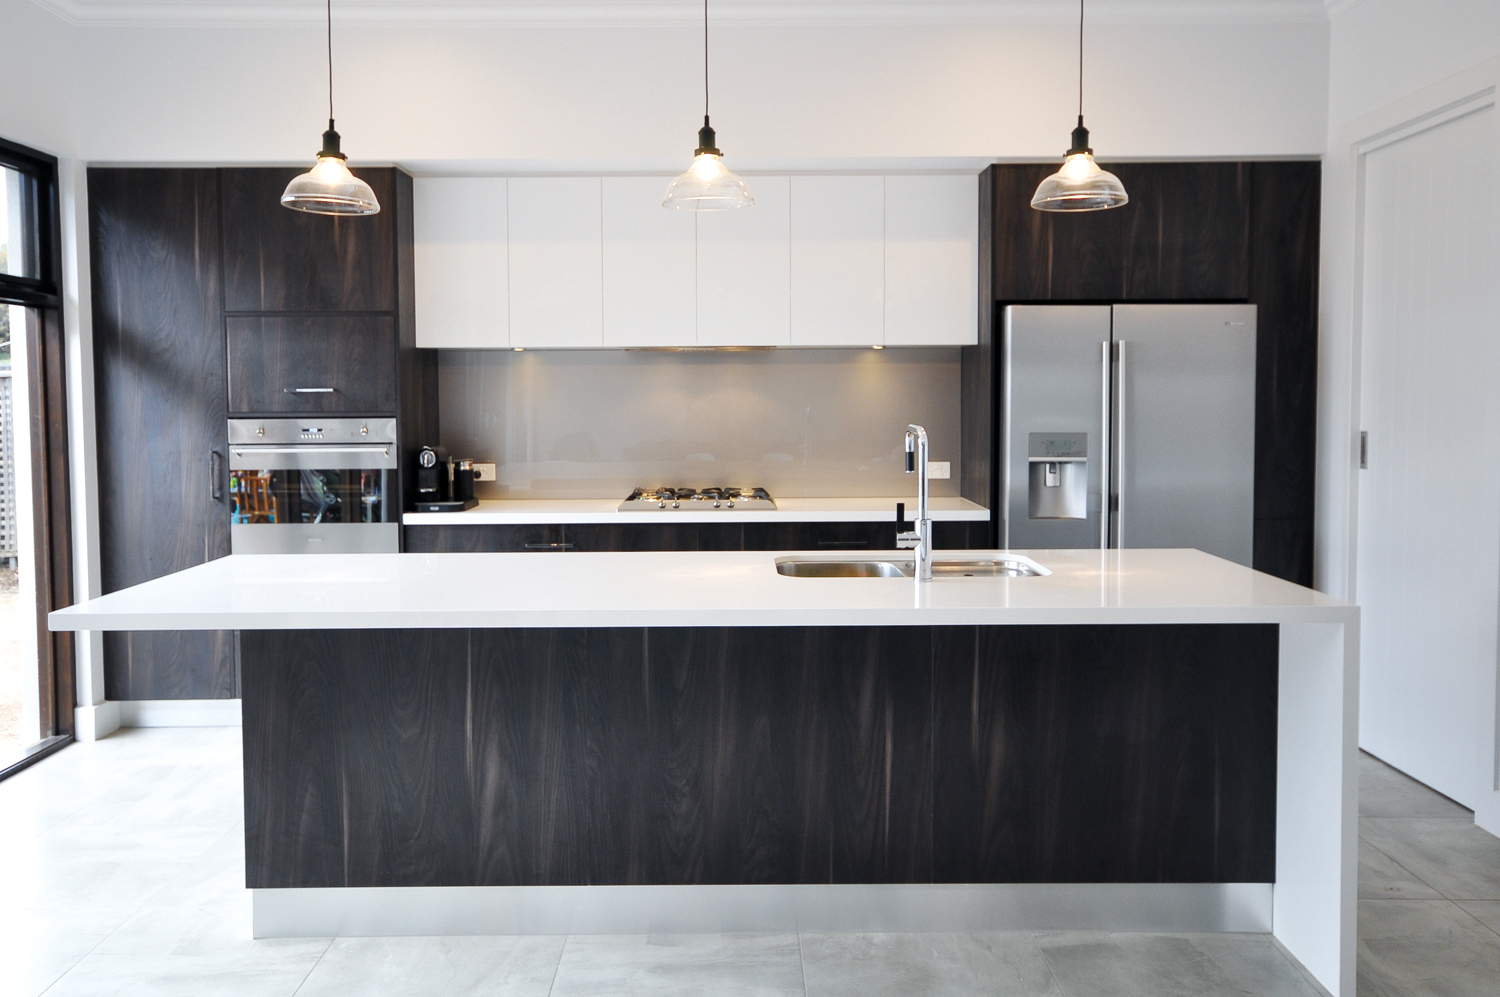 Family-focused durable kitchen